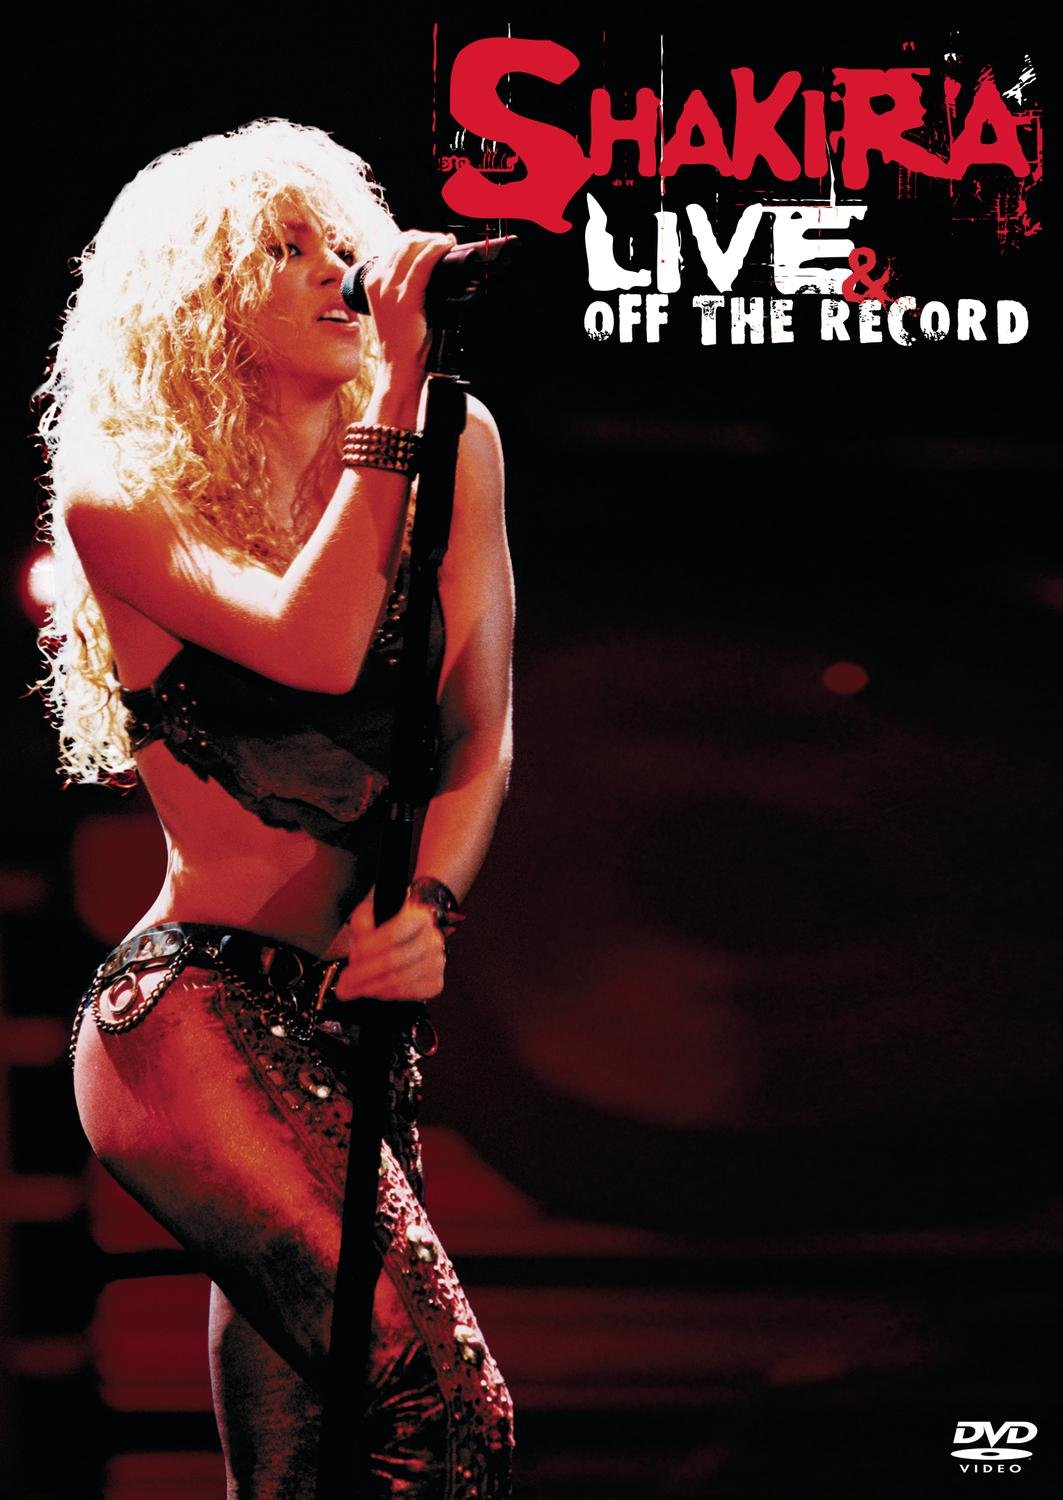 Shakira: Live & Off The Record by SHAKIRA